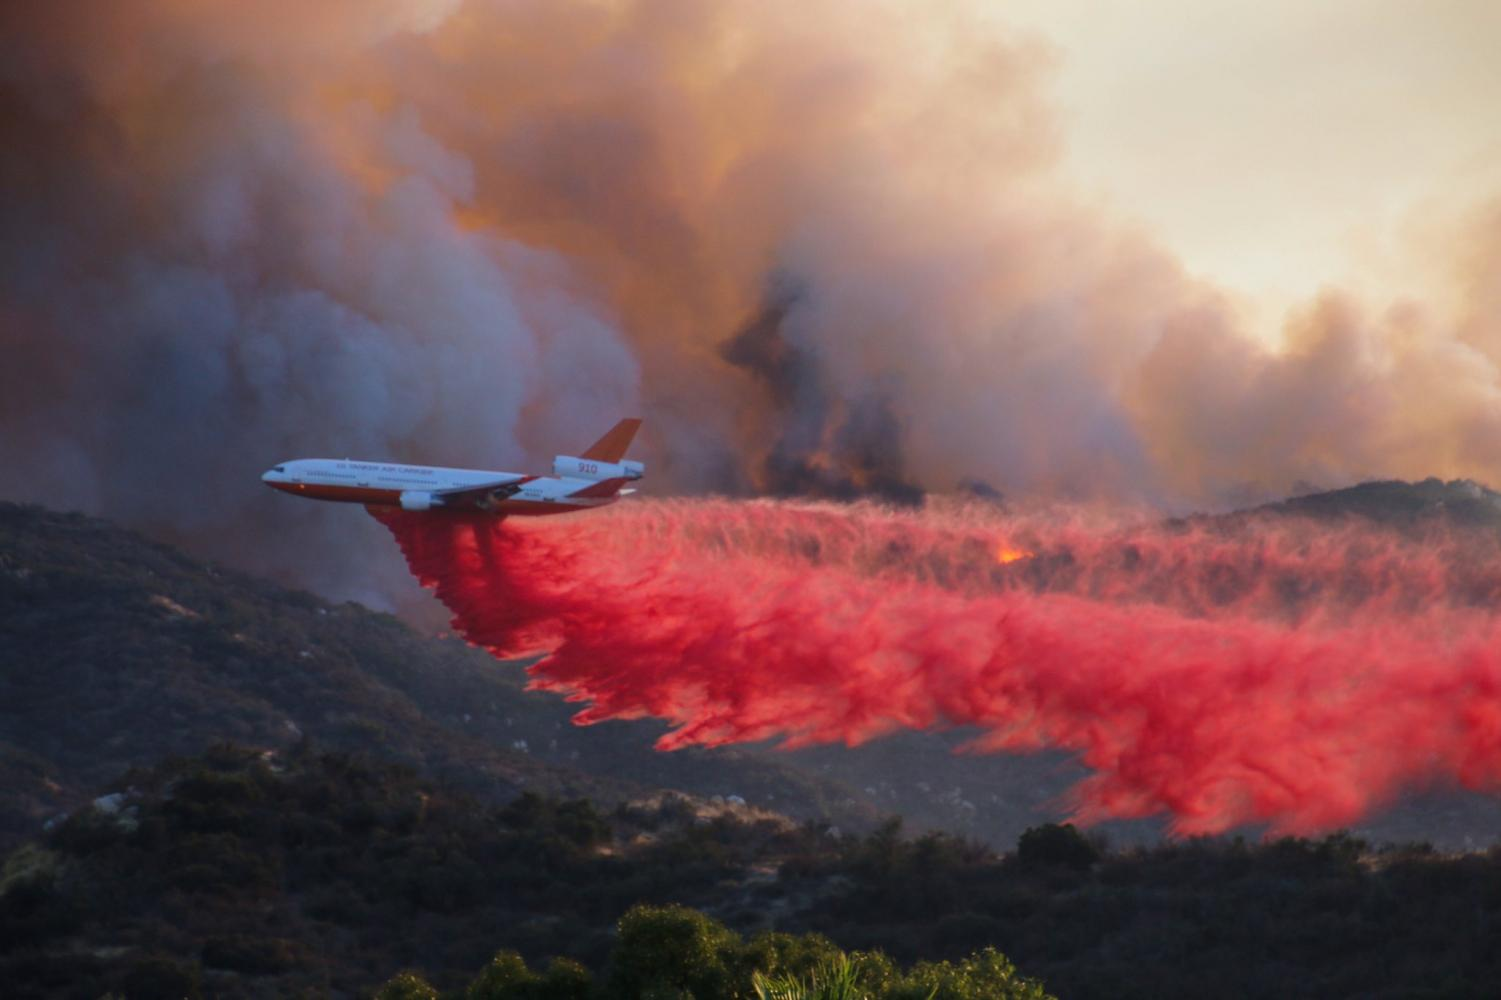 An aircraft drops retardant on a wildfire in Wildomar, Oct. 26. Photo courtesy of Cleveland National Forest's Twitter page.